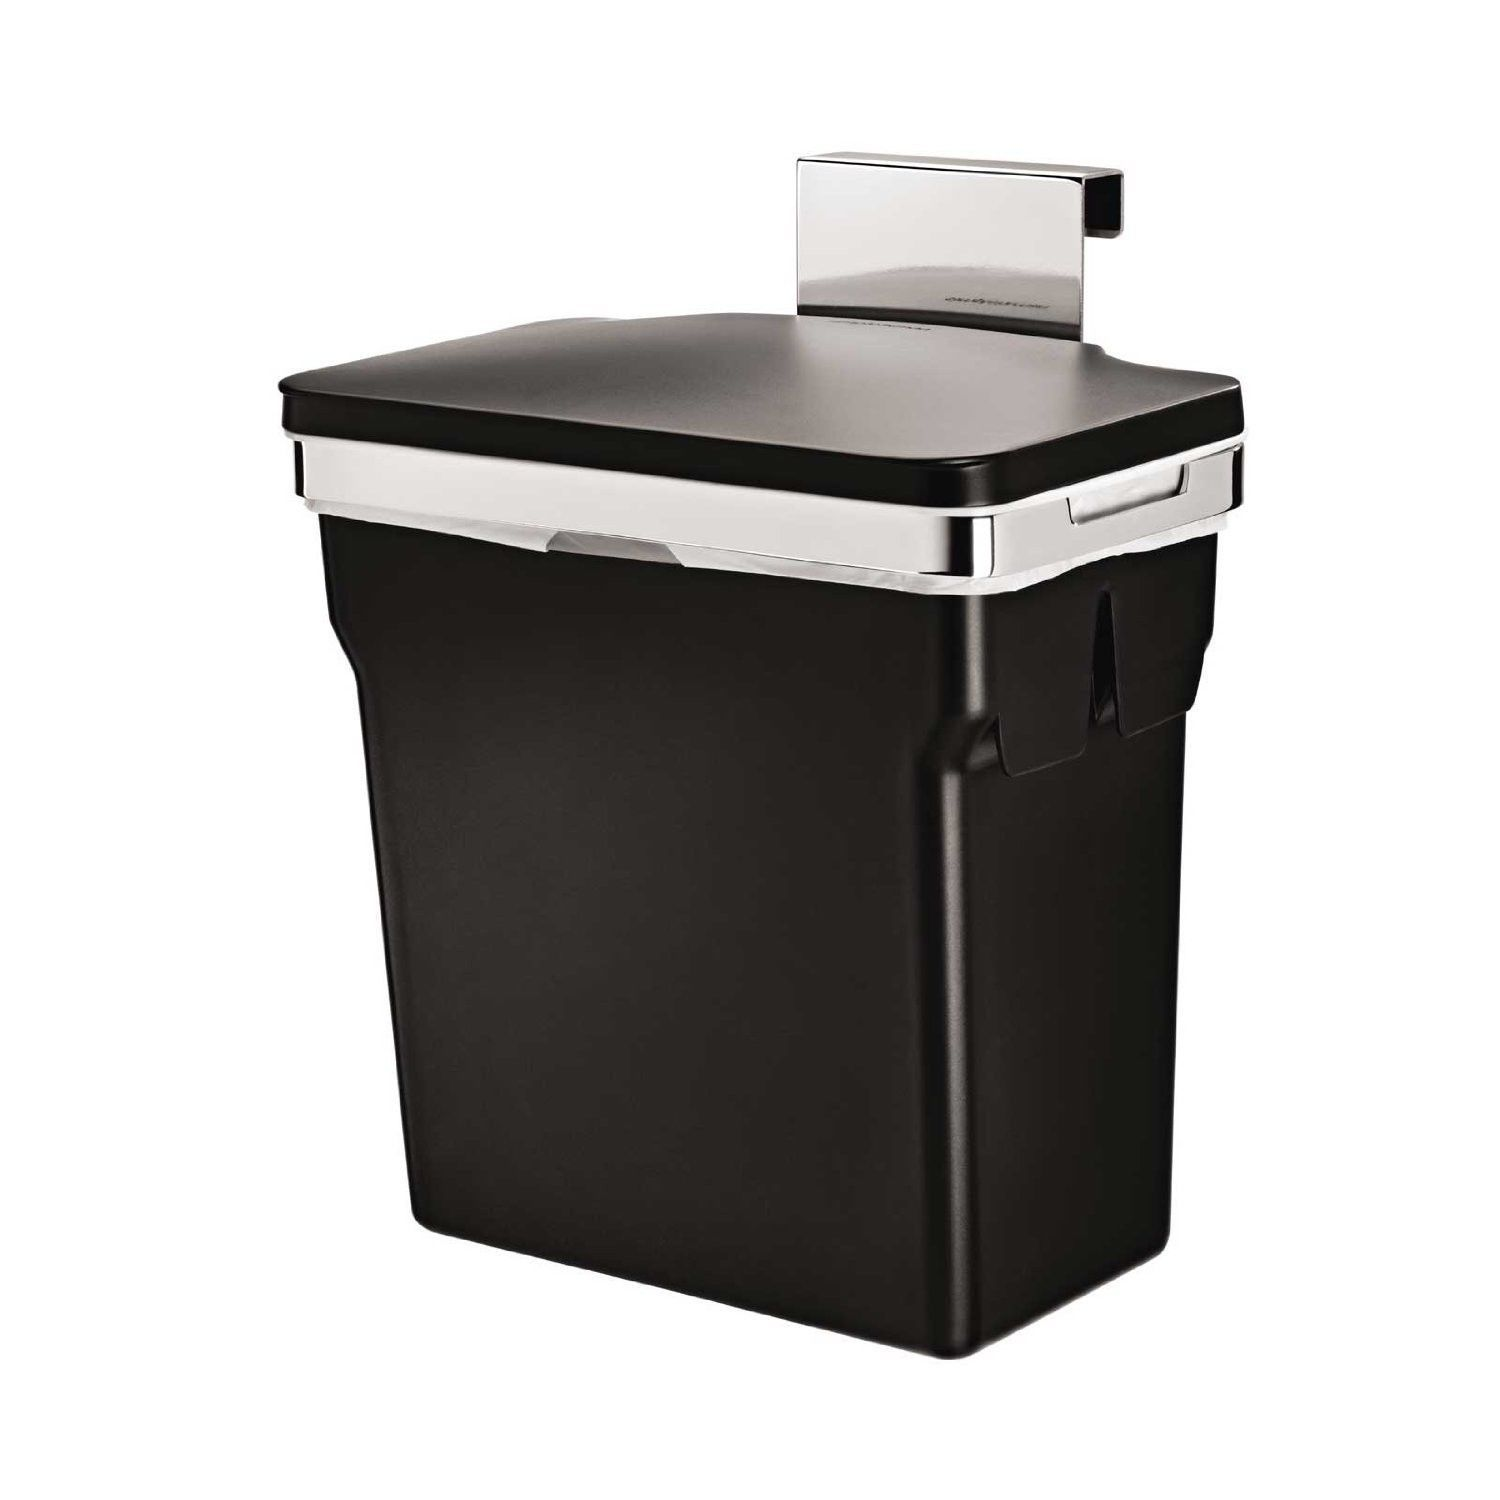 In Cabinet Trash Can Hanging Cabinet Mount Waste Bin Kitchen Trash